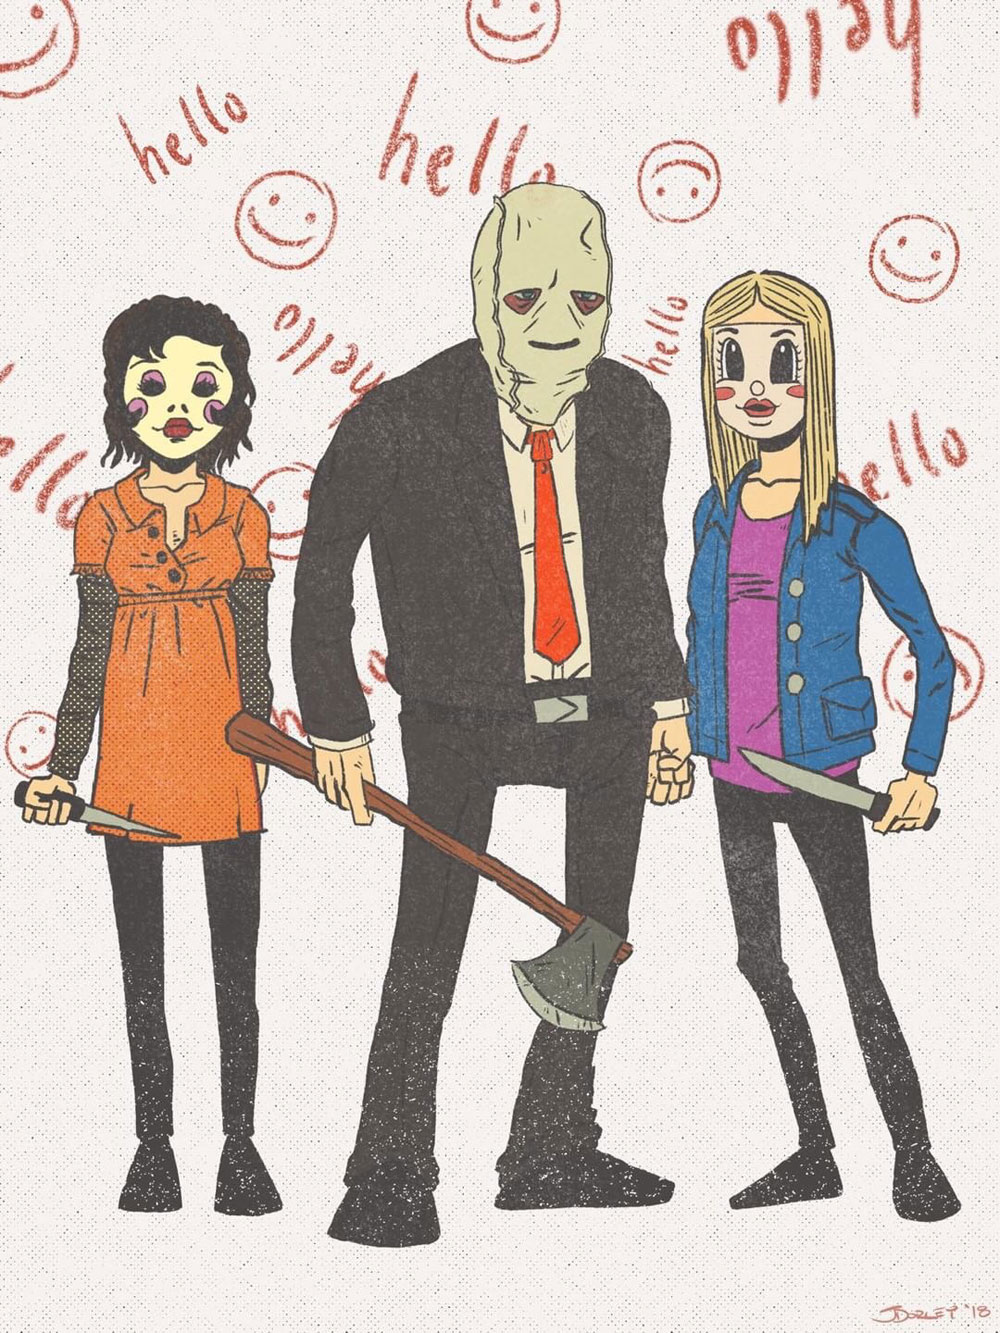 strangers2 fan art sample - The Strangers: Prey at Night Fan Art Contest Continues! Exclusive Image!